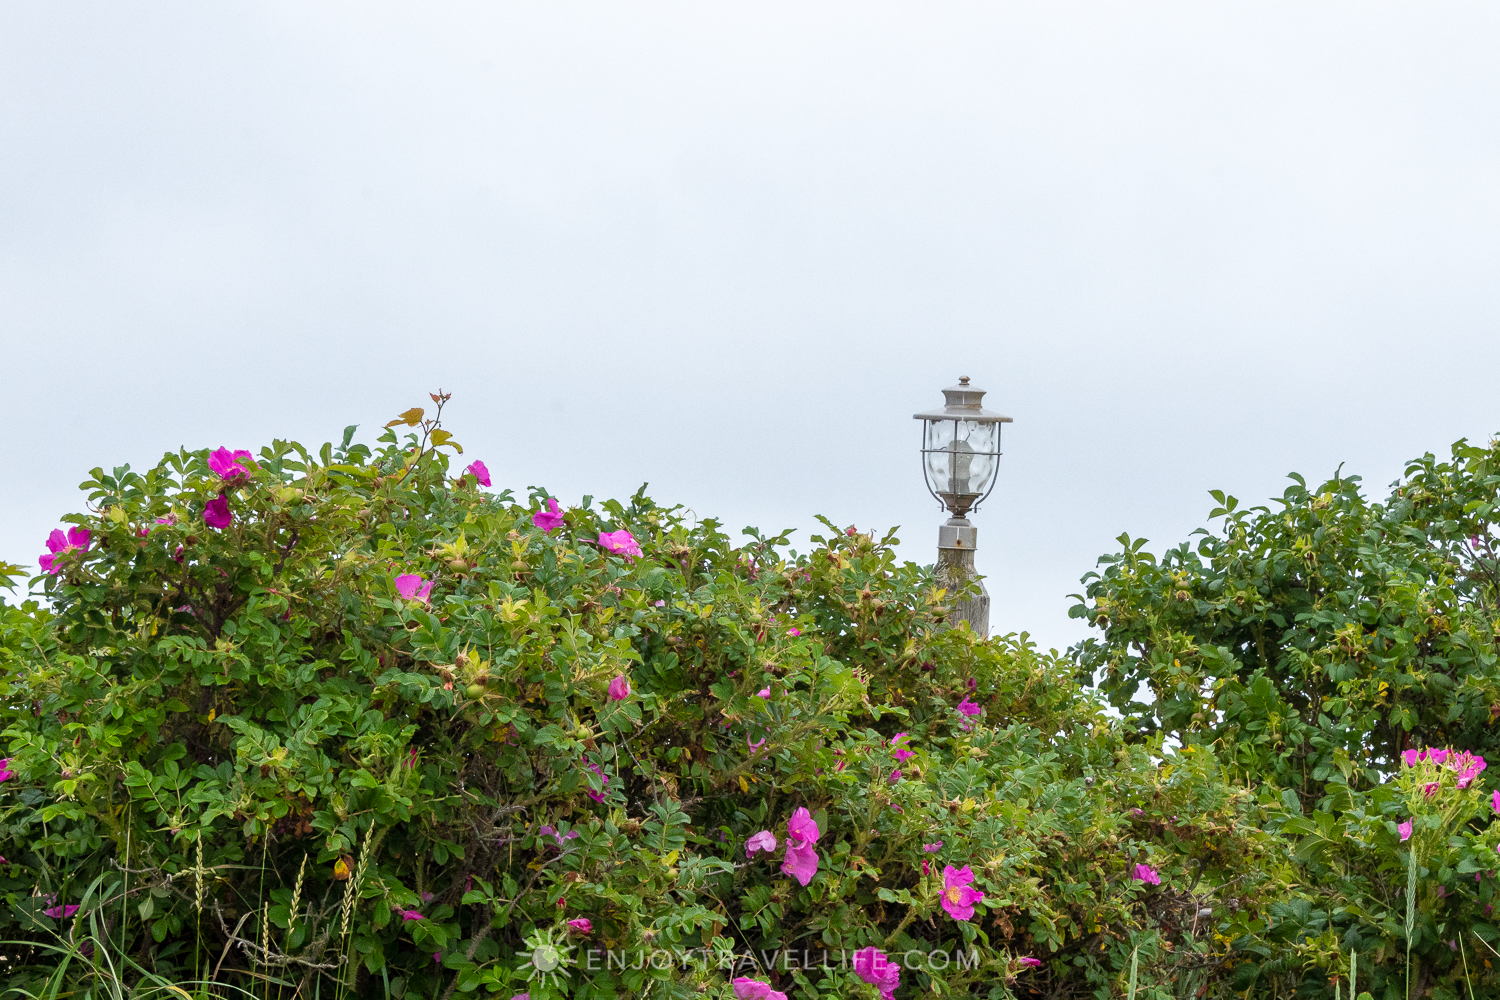 Waterfront Weekend in Chatham - Chatham Tides Inn Beach Roses & Lantern